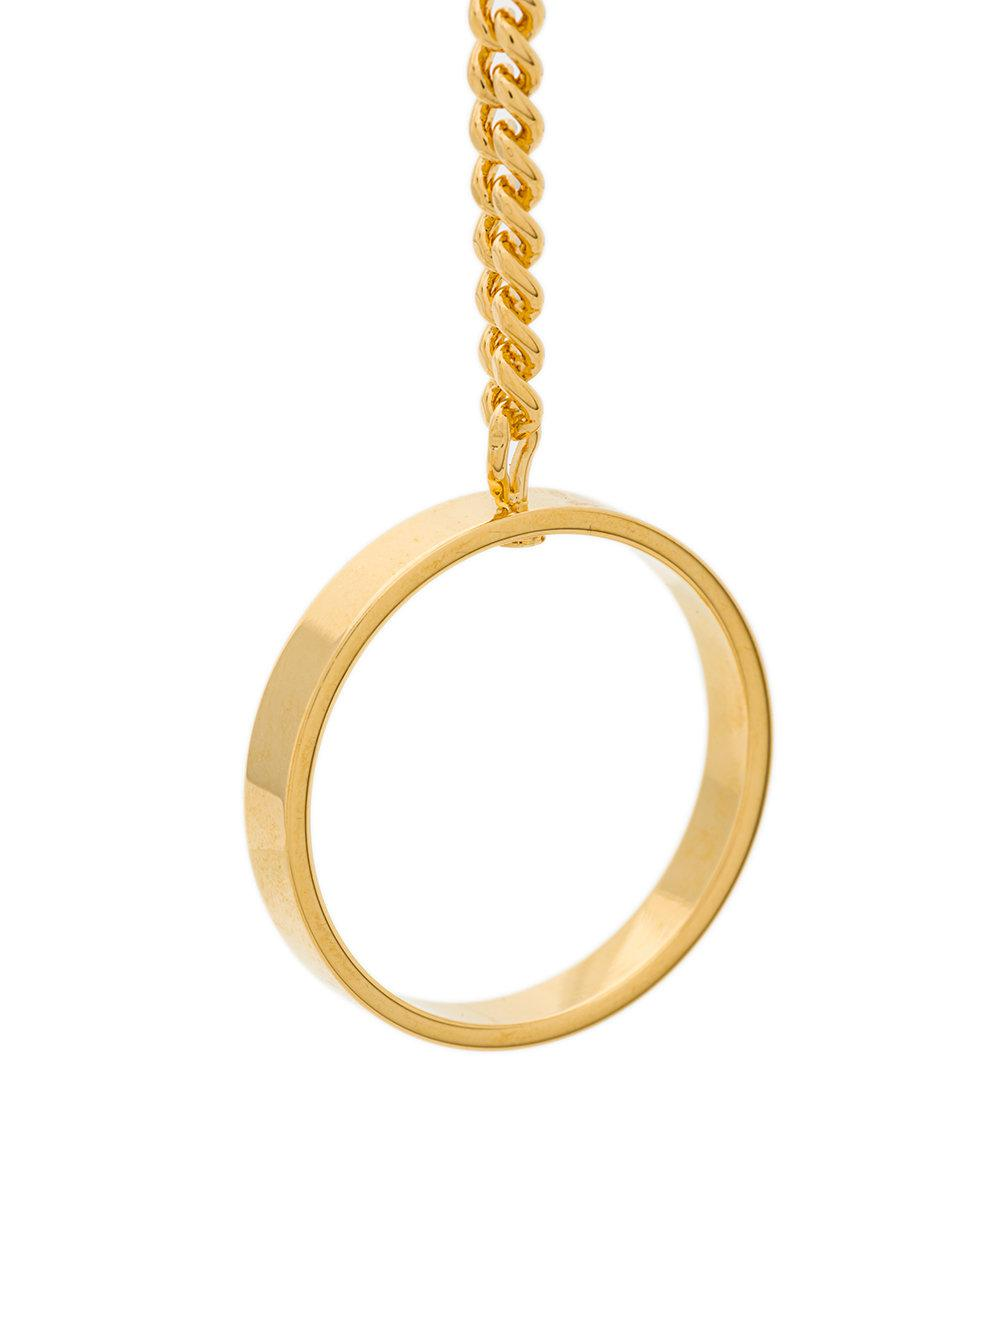 asymmetric ring chain necklace - Metallic Jil Sander nU0i17KaE